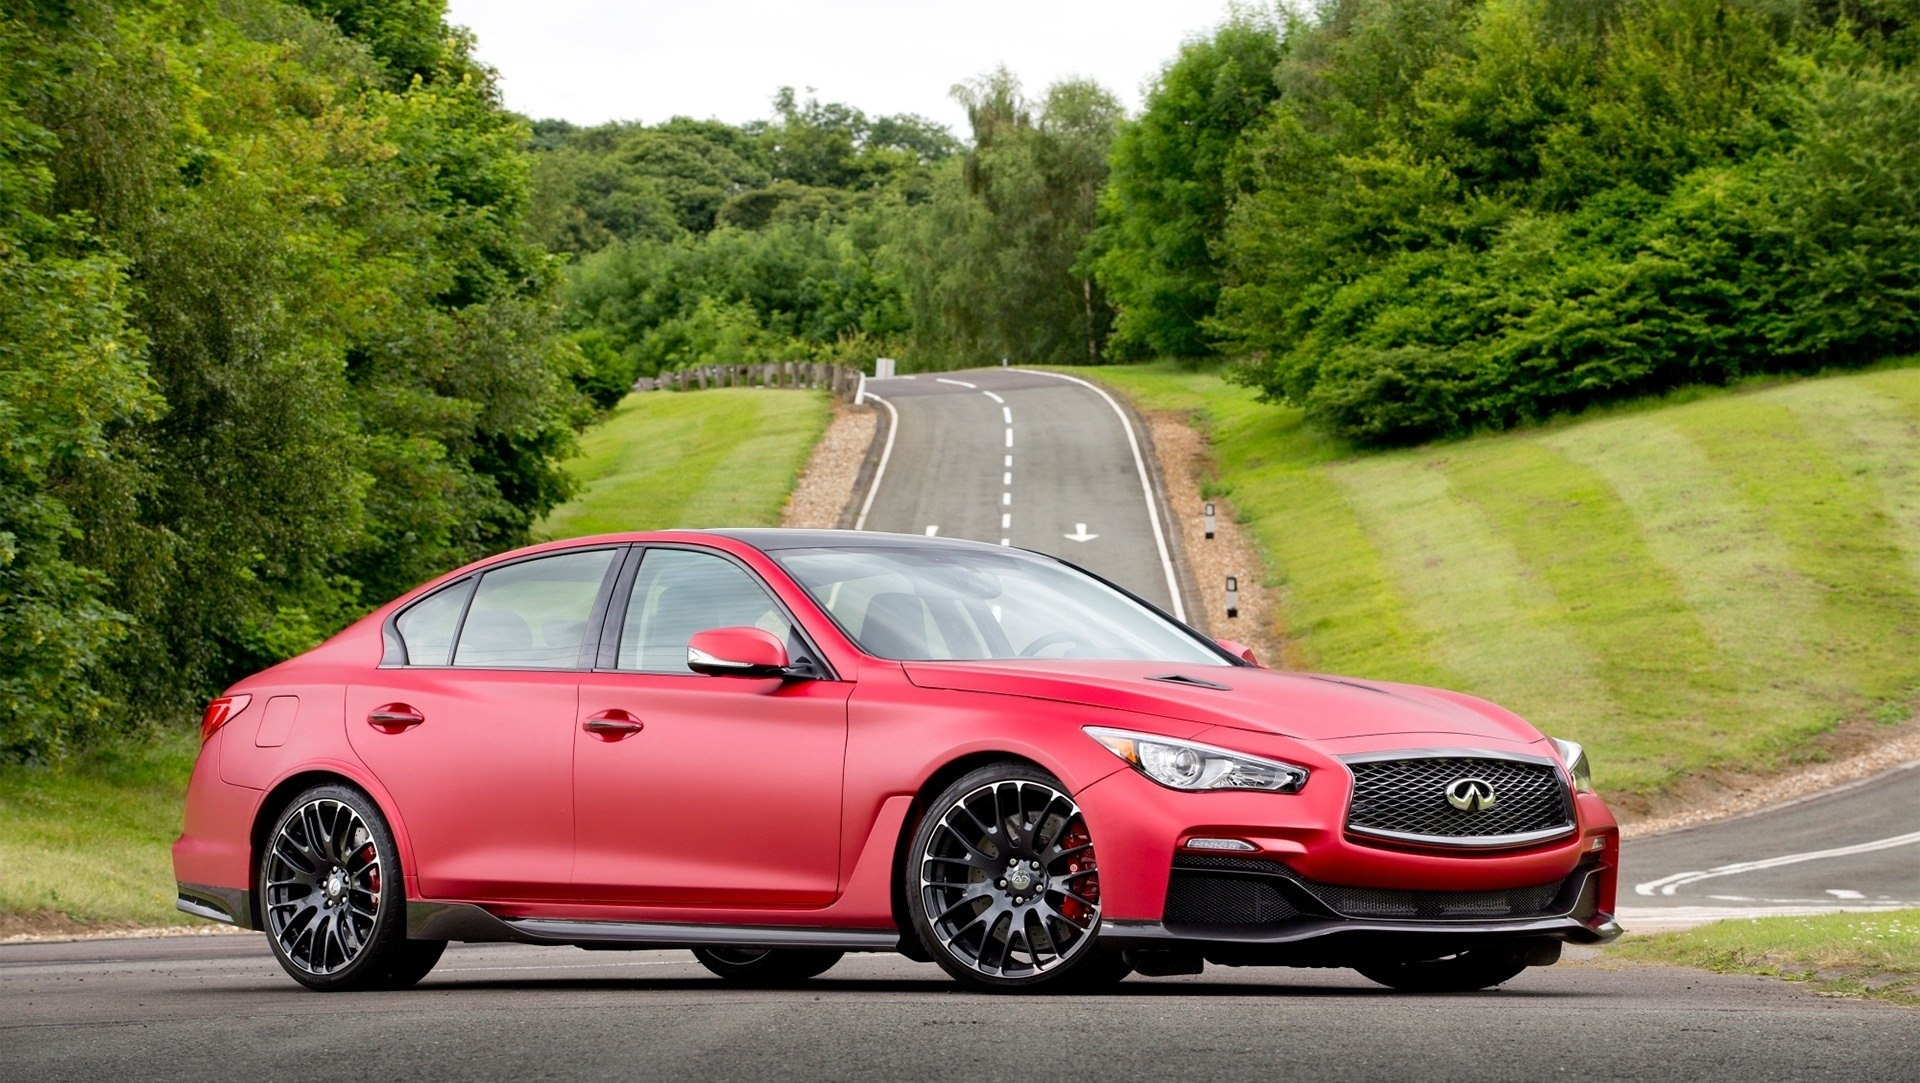 96 The Best 2020 Infiniti Q50 Coupe Eau Rouge Style